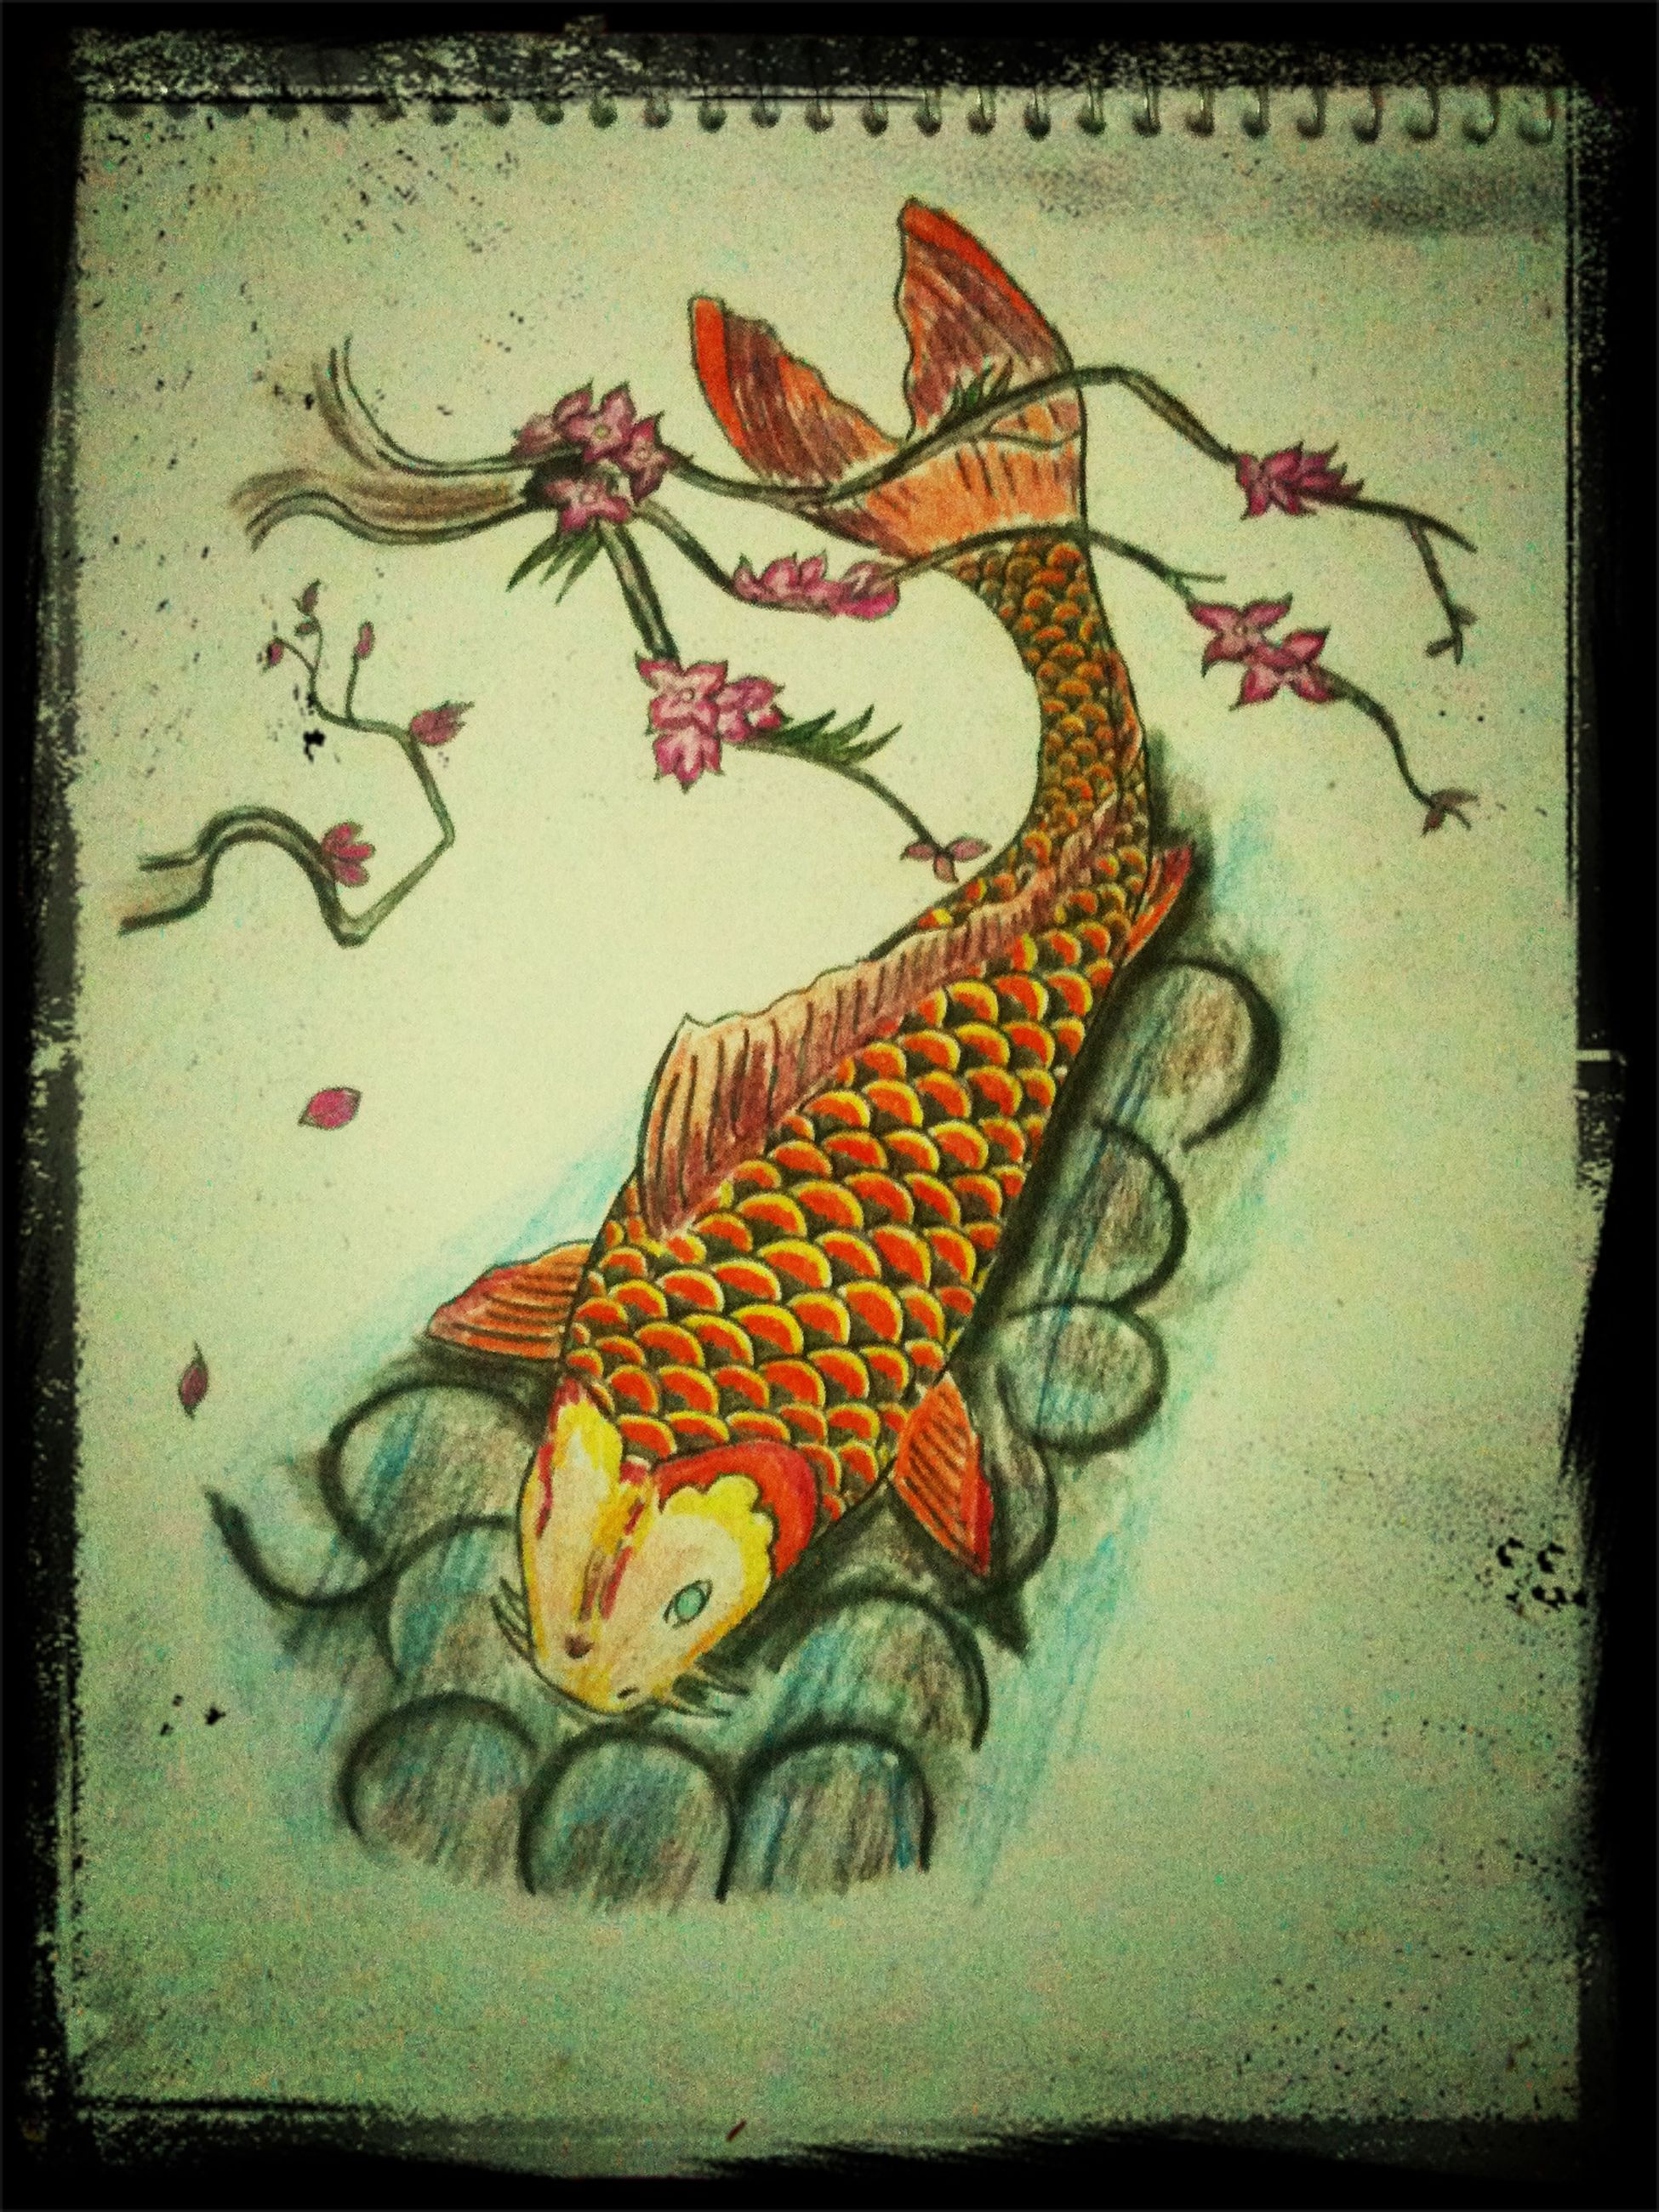 art and craft, animal representation, art, creativity, animal themes, red, culture, green color, animal markings